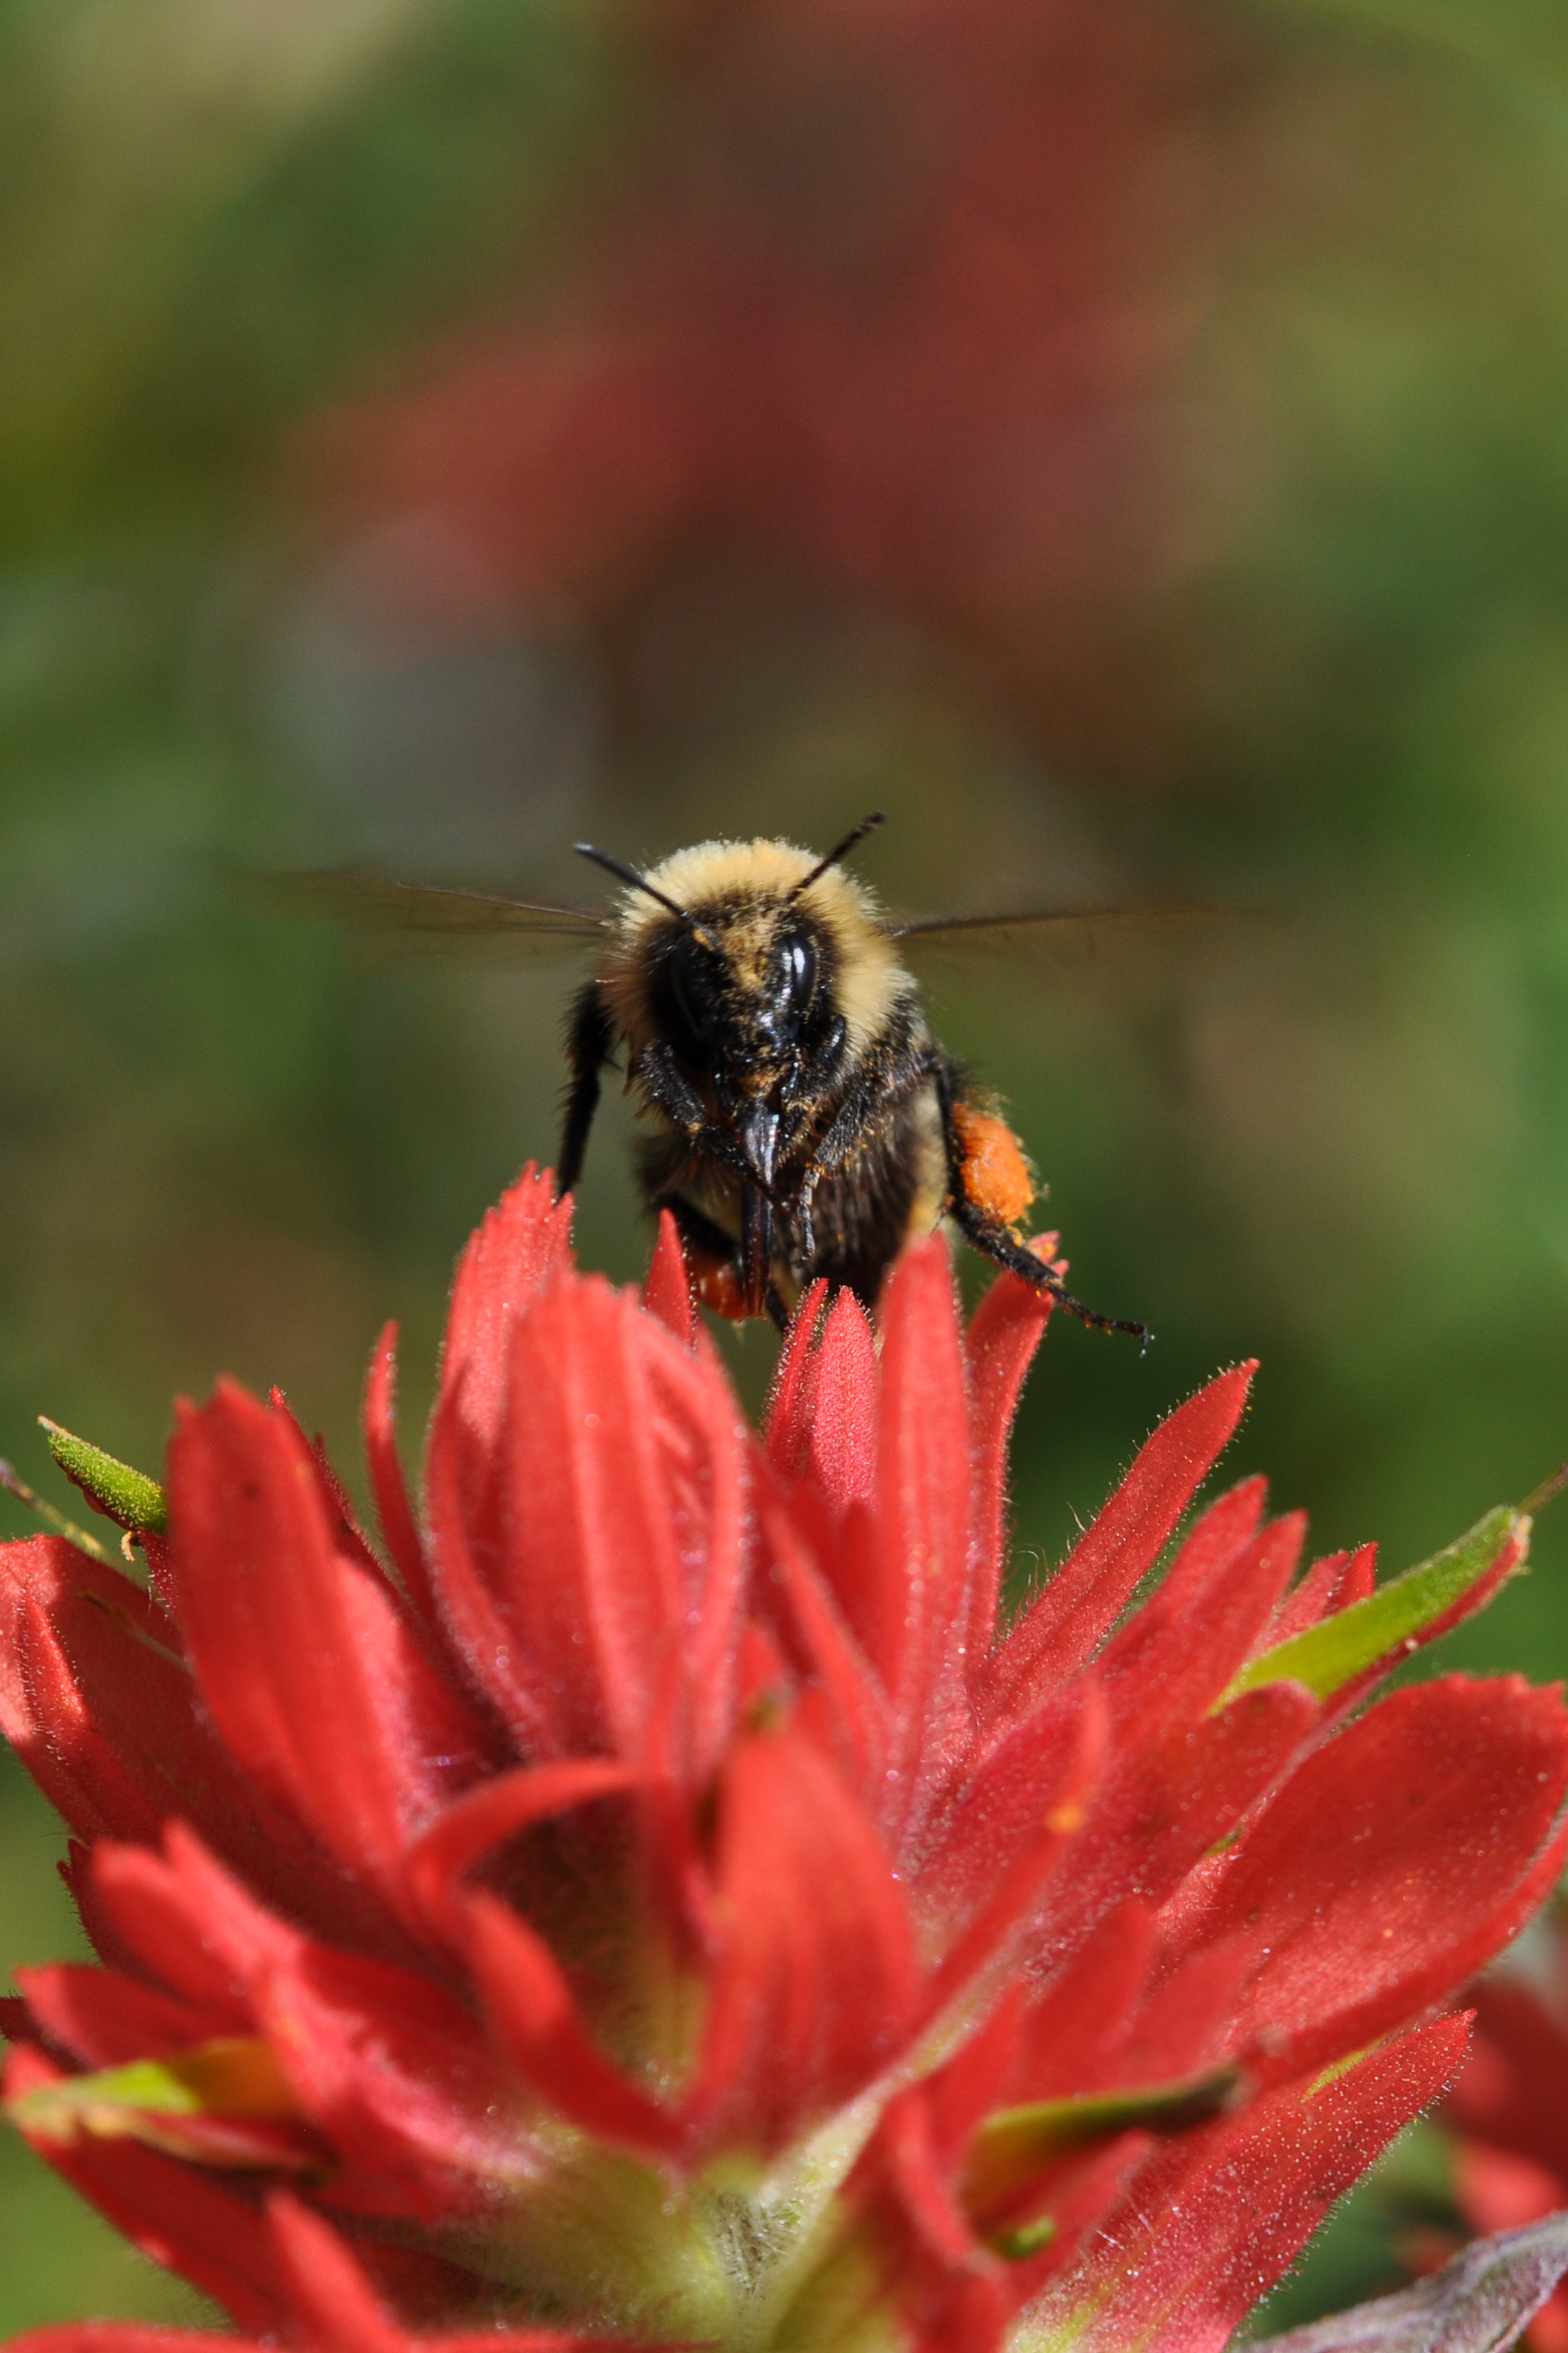 The high country bumble bee (Bombus kirbiellus) stares directly at the camera, with its wings blurred, and perched atop a red paintbrush blossom.